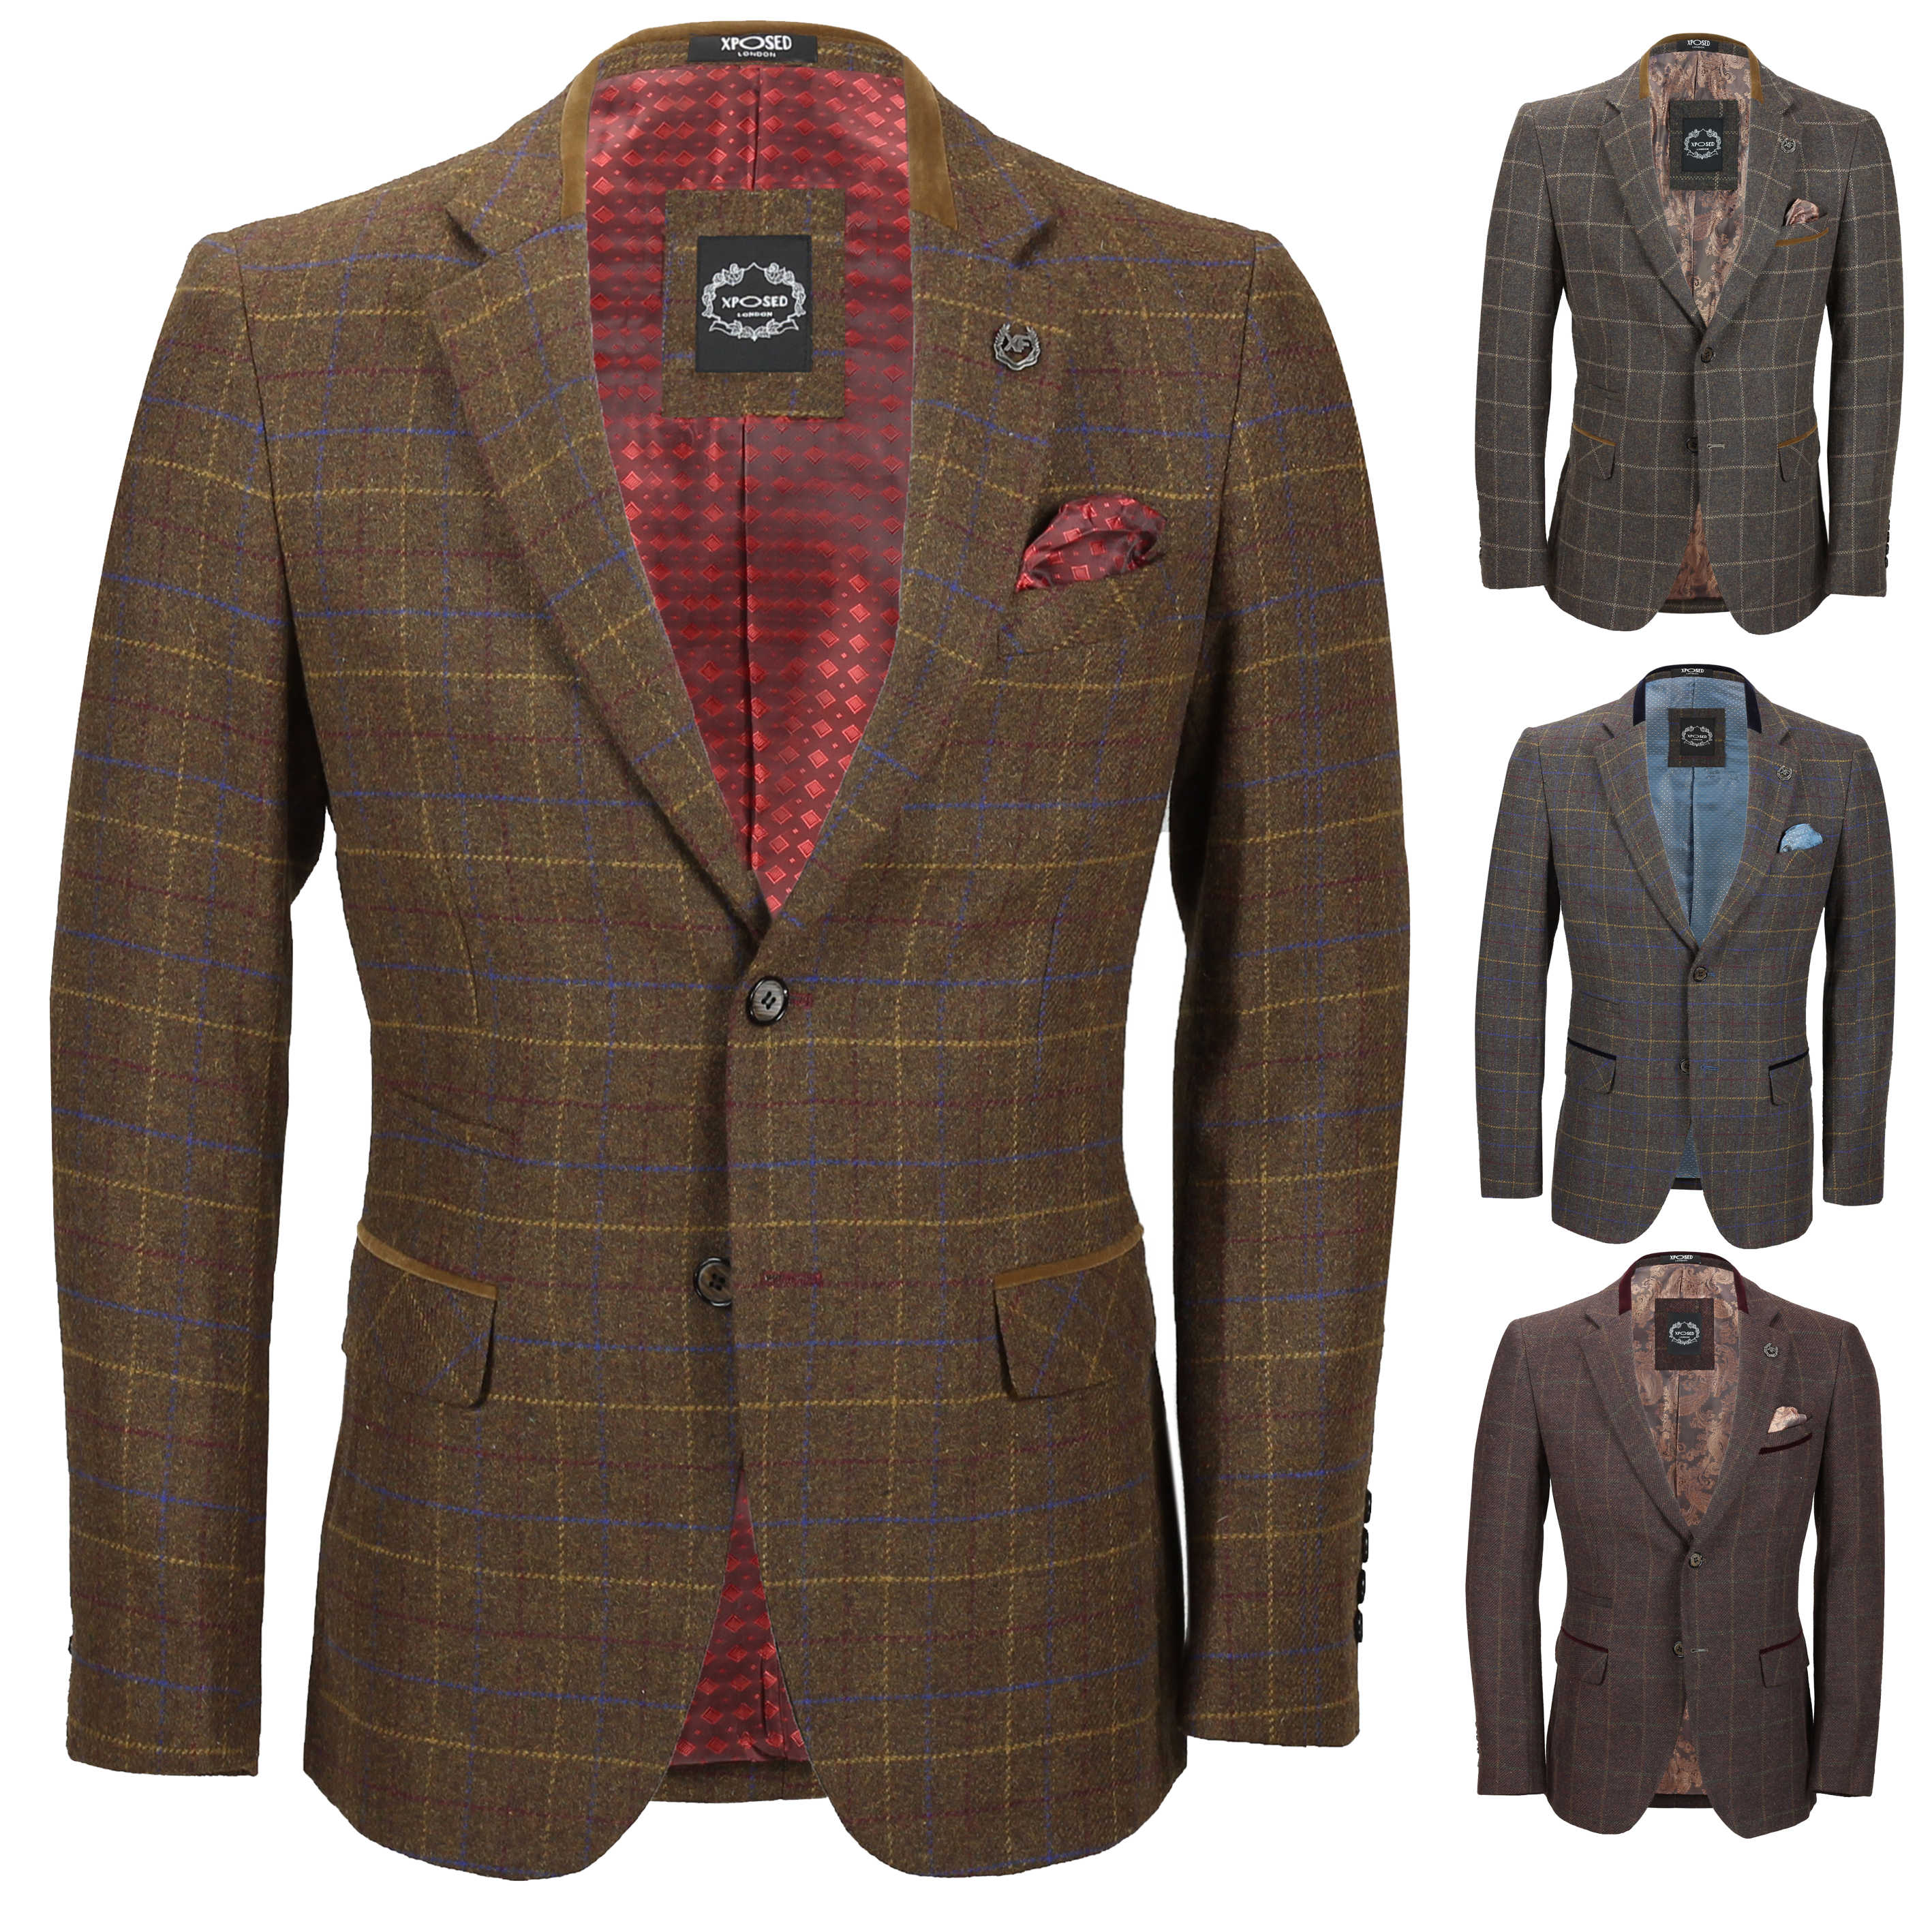 Heren: kleding Kleding en accessoires Mens Light Brown Herringbone Tweed Vintage Slim Fit Blazer Smart Casual Jacket